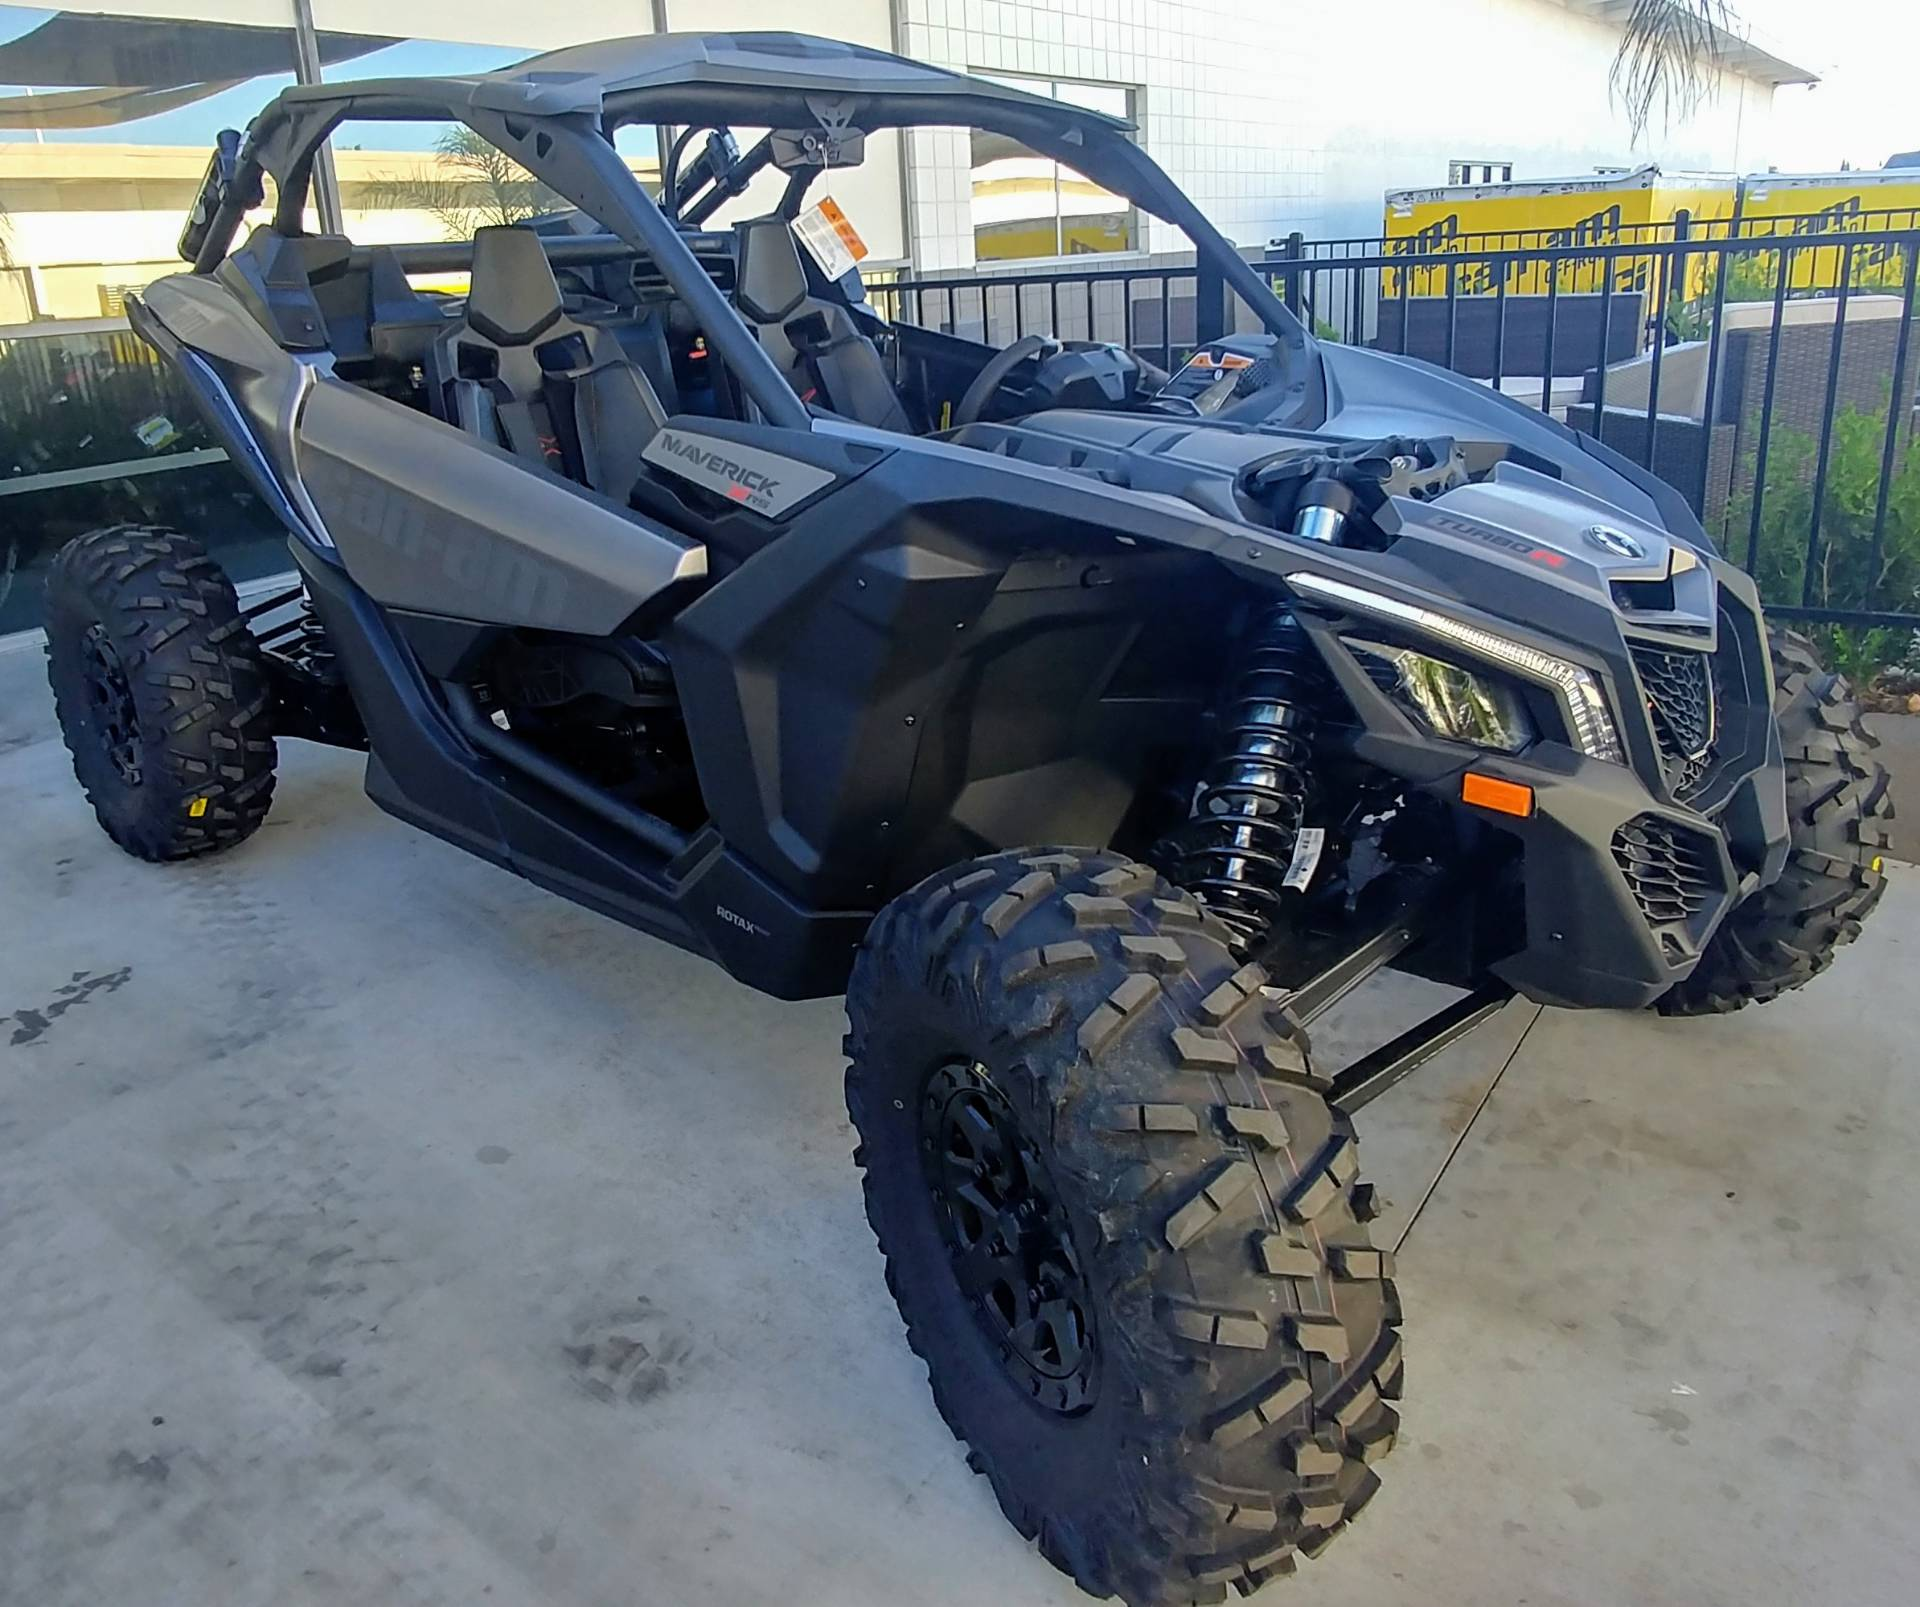 2019 Can-Am Maverick X3 X rs Turbo R in Ontario, California - Photo 6